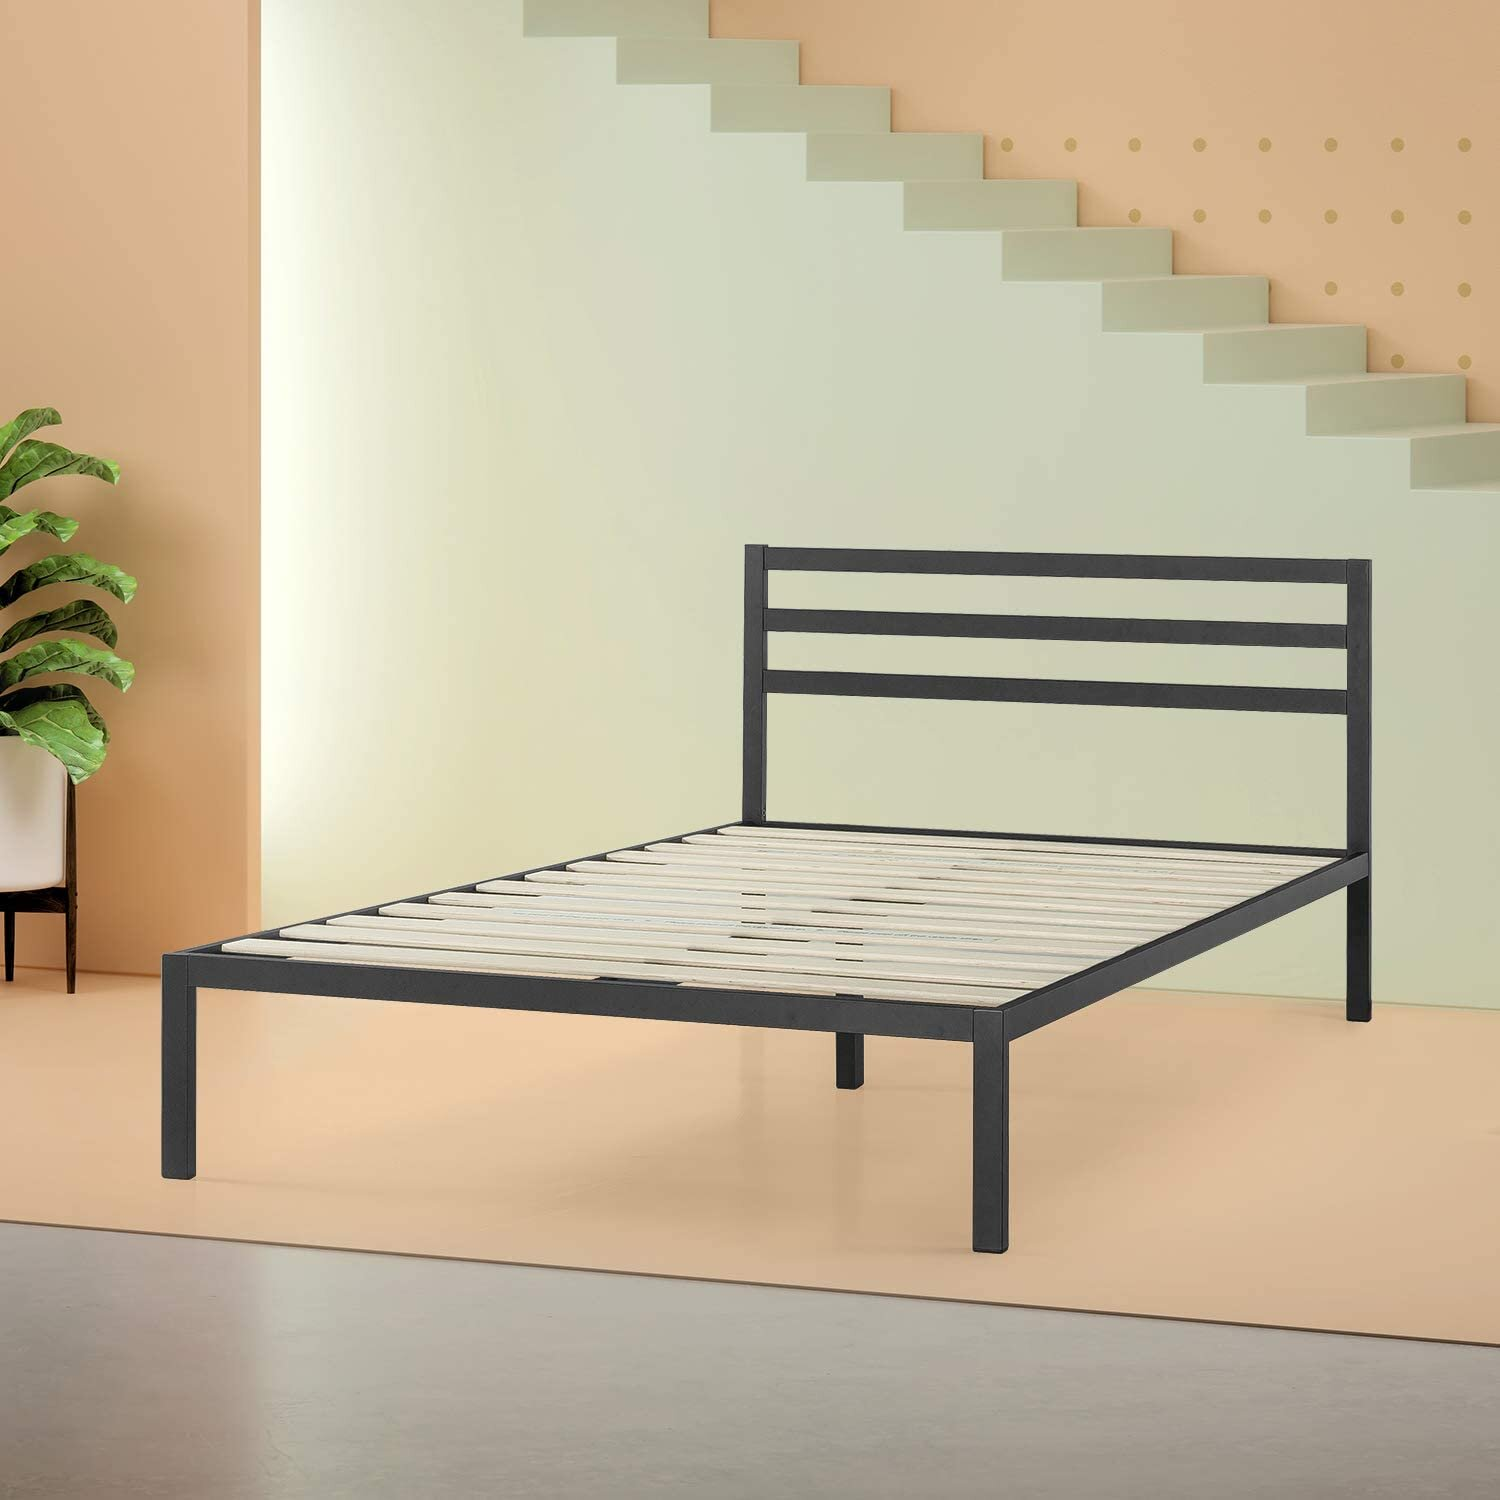 Picture of: Metal Queen Size Beds You Ll Love In 2020 Wayfair